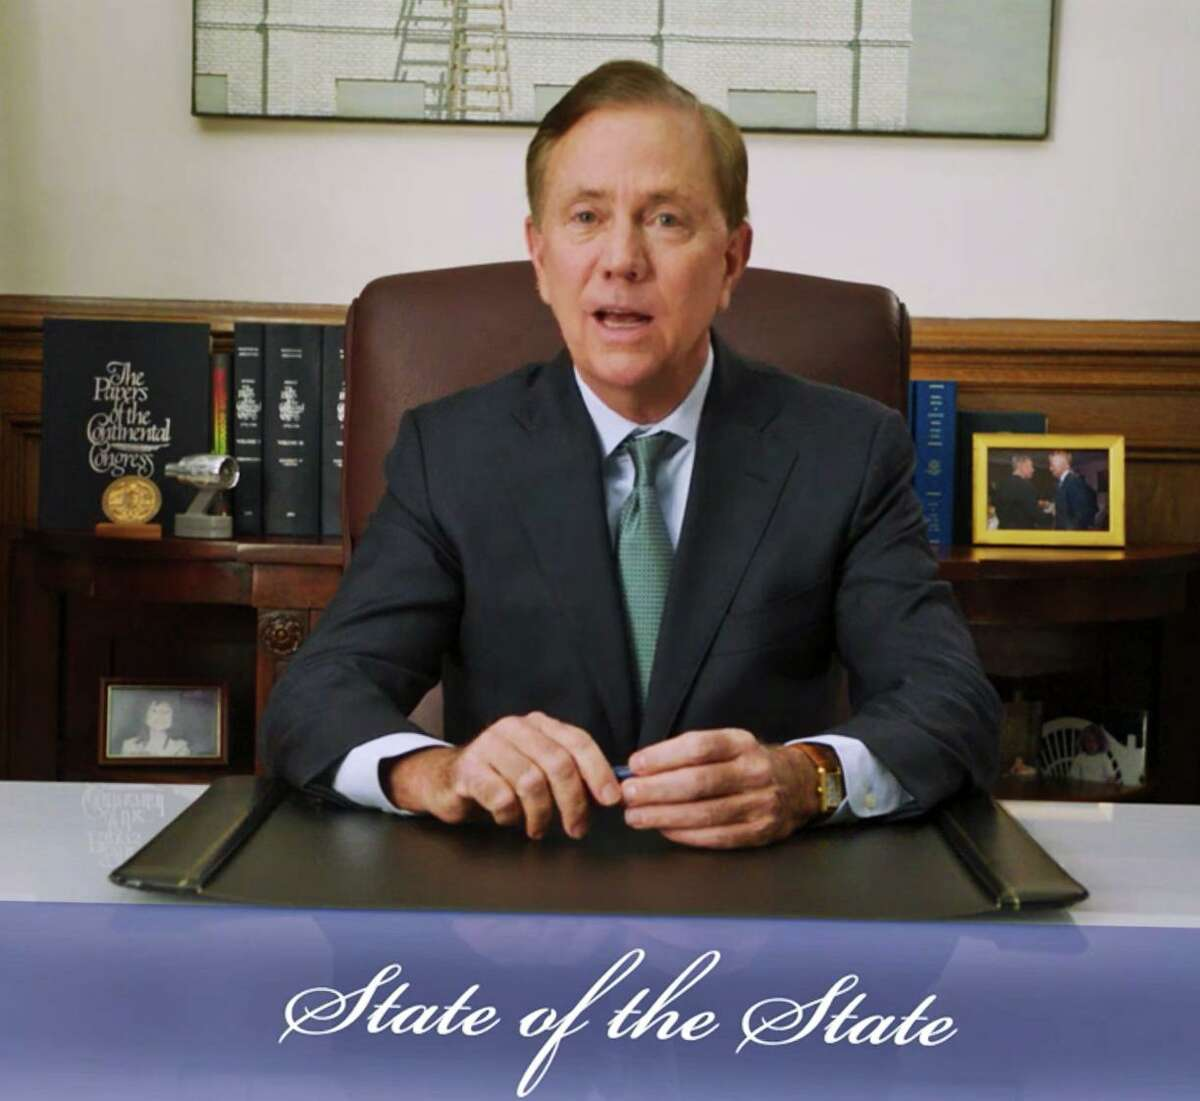 Connecticut Gov. Ned Lamont delivers his 2021 state of the state address from his office on Jan. 6.